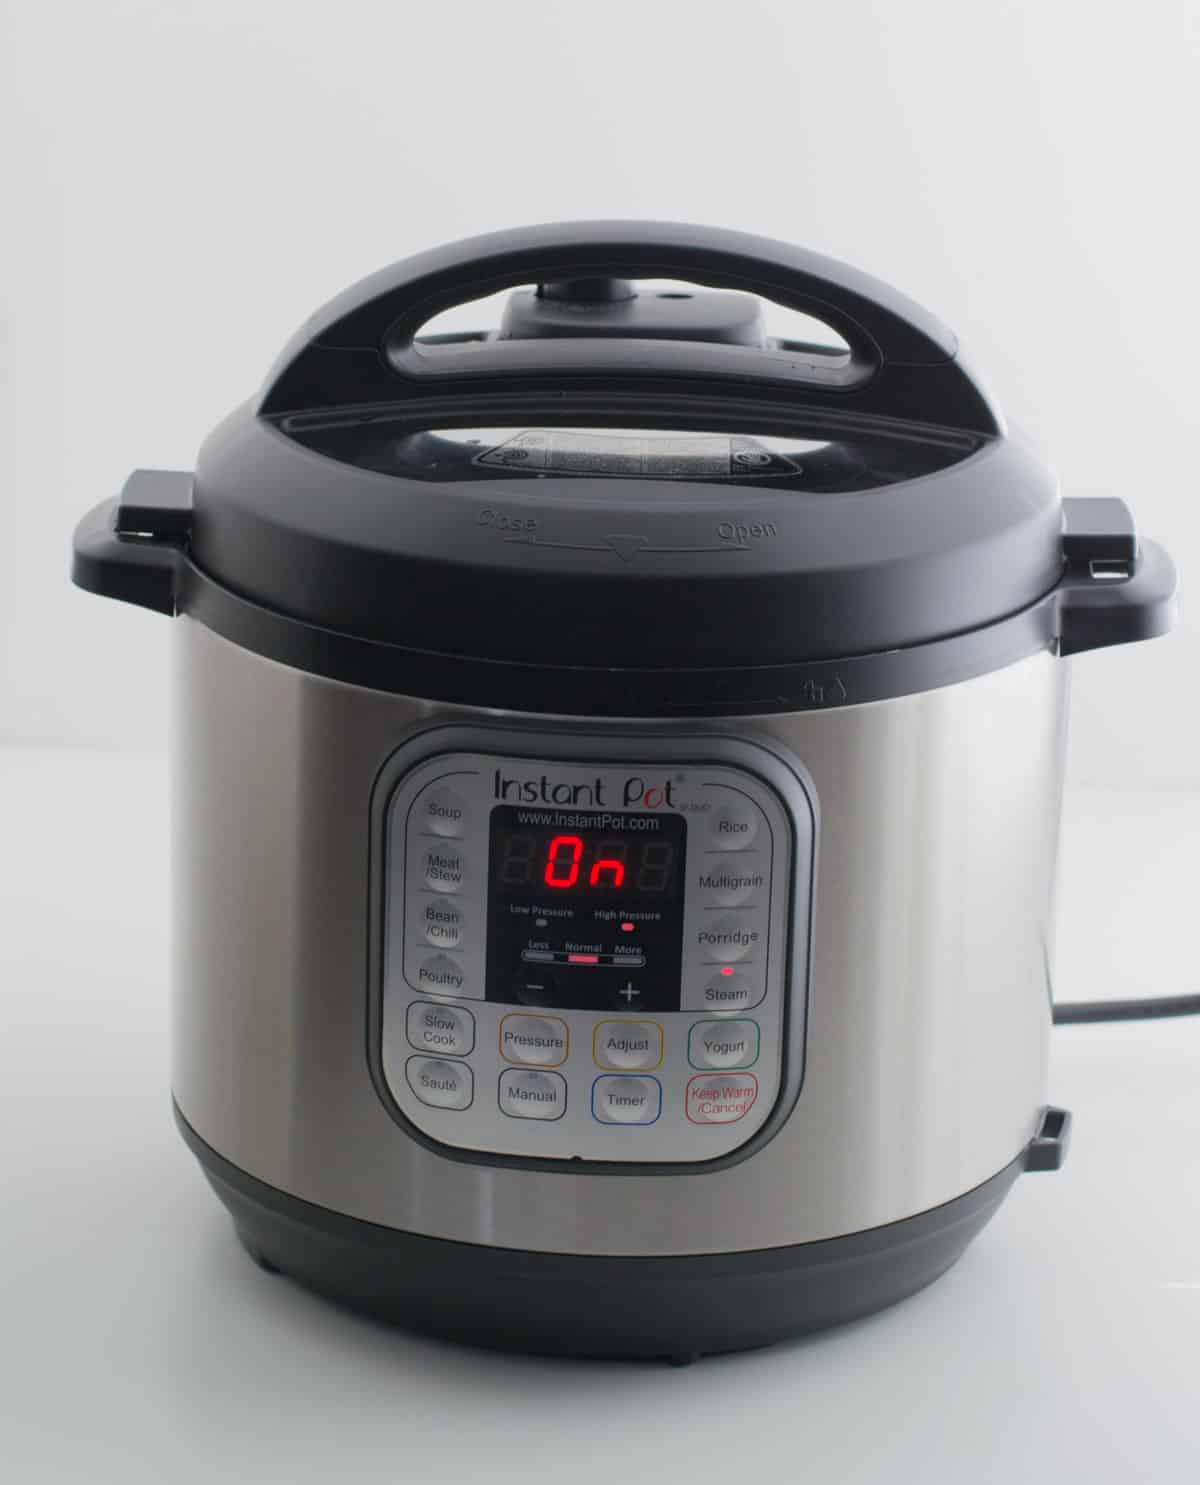 Can't wait to start using your new Instant Pot? Follow this quick start guide to learn how to use your Instant Pot Pressure Cooker to make delicious meals.